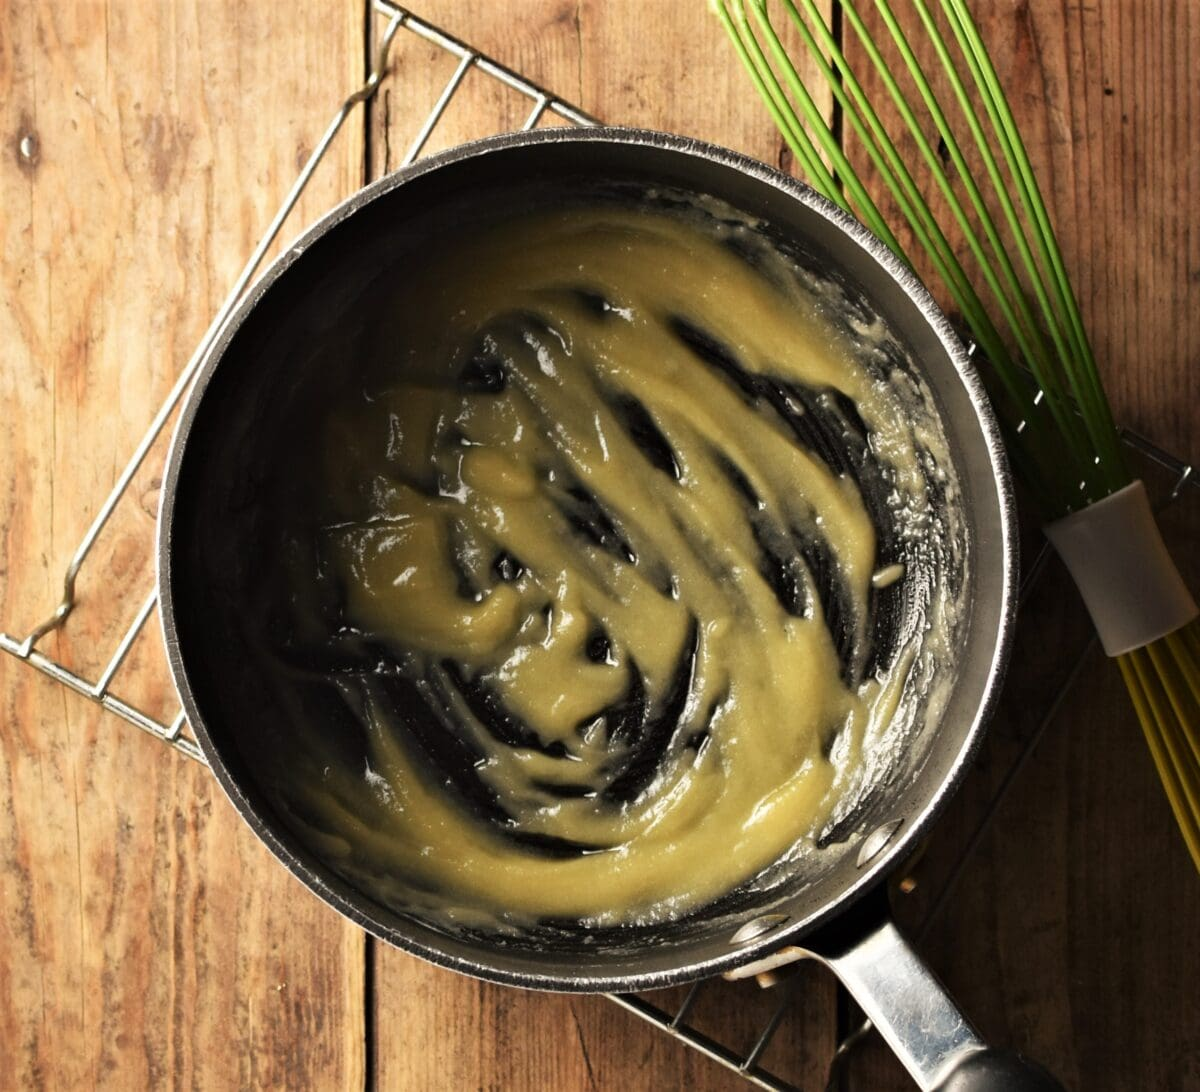 Simple white sauce in black saucepan wrapped in colourful cloth with peppercorns, onion and garlic cloves scattered around.